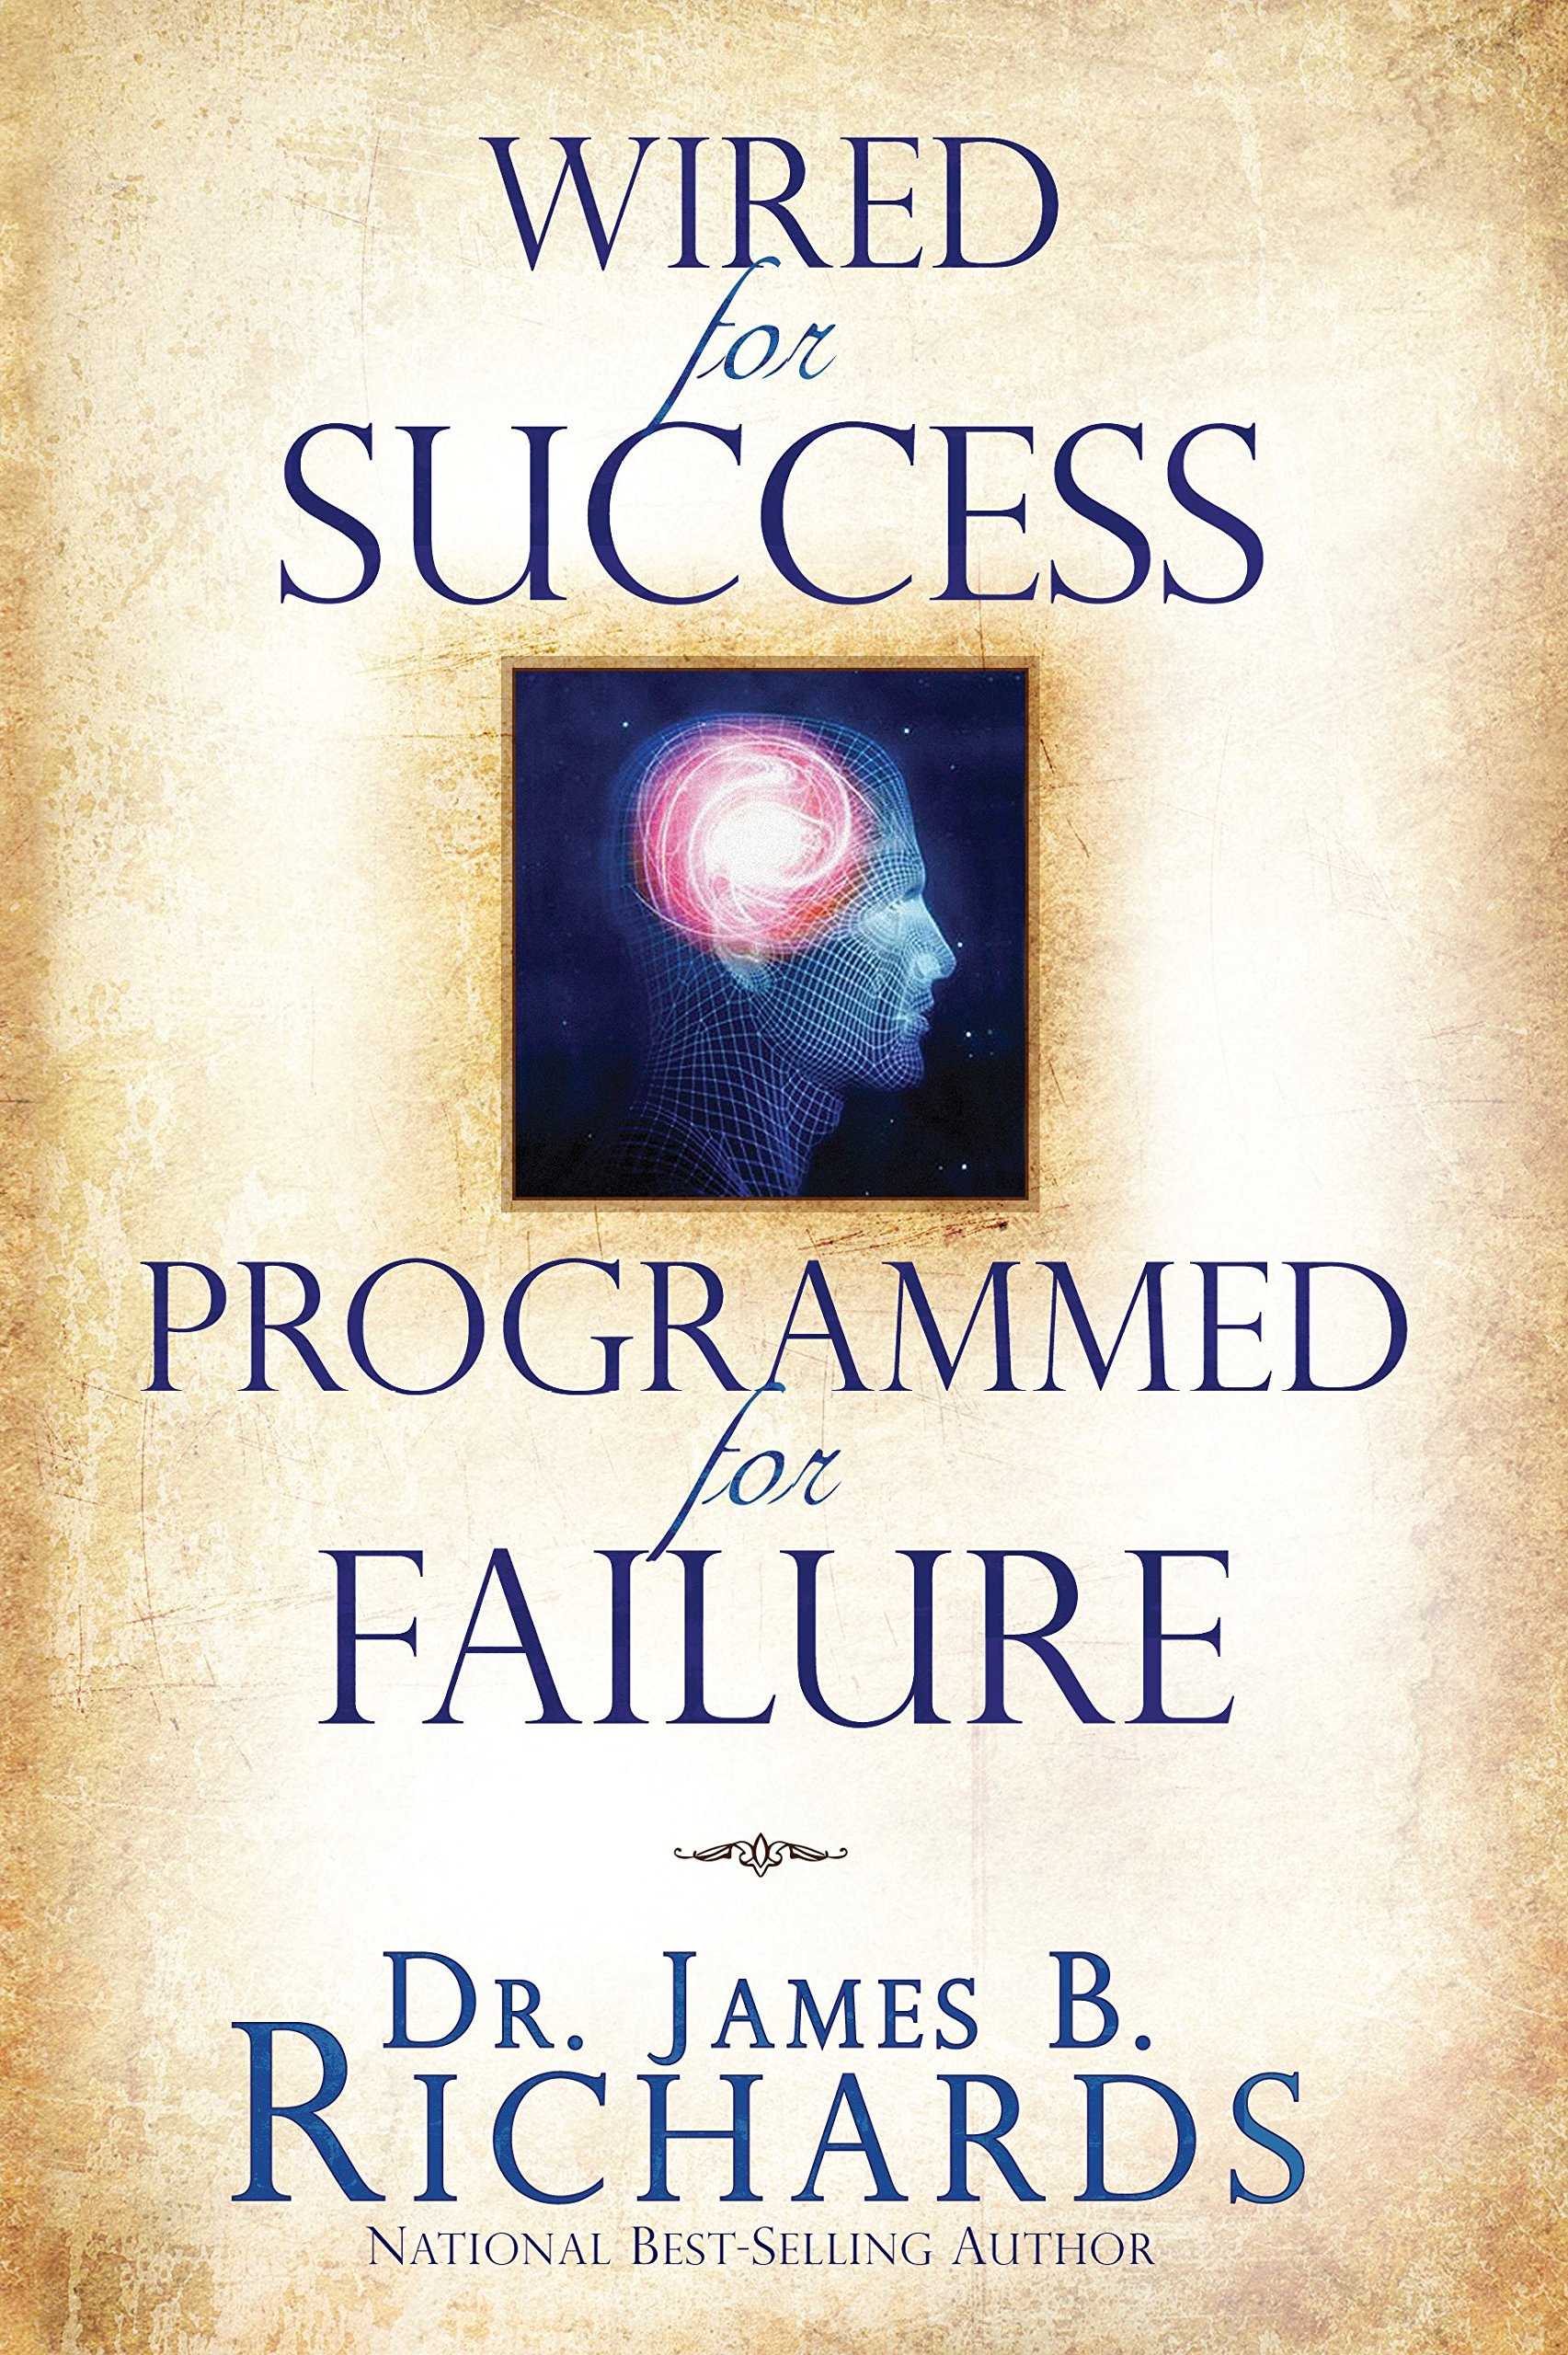 Wired for Success, Programmed for Failure: Dr. James B. Richards ...